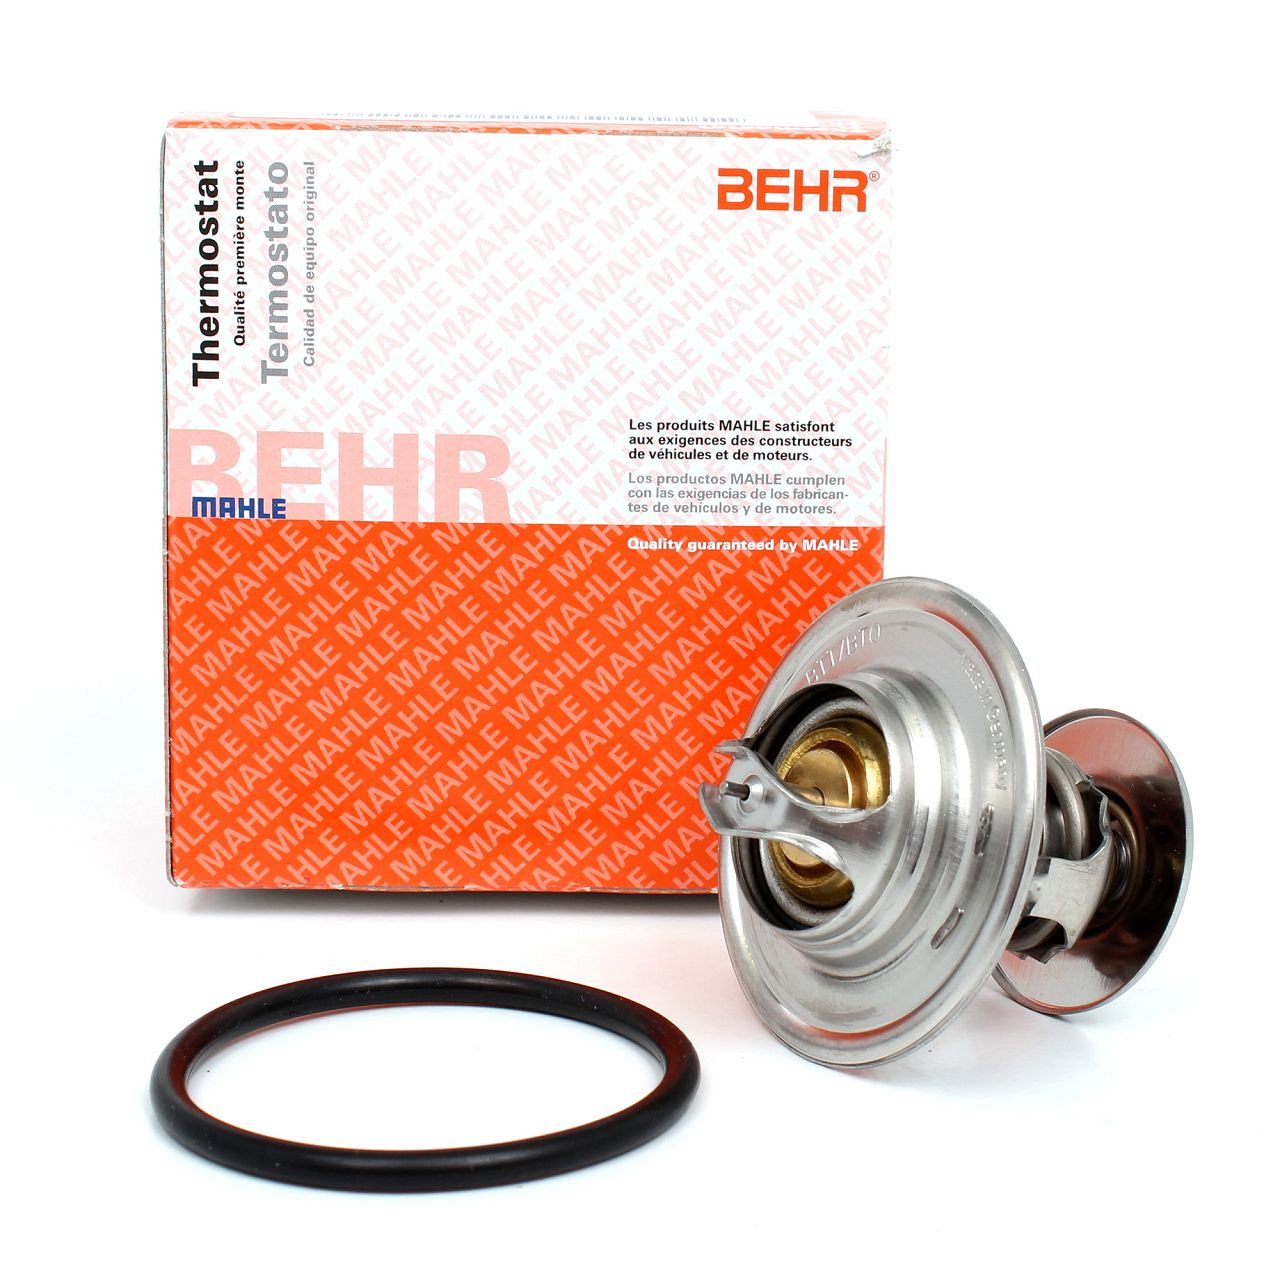 BEHR MAHLE TX1587D Thermostat 87°C AUDI 80 A3 A4 SEAT SKODA VW Golf Polo T3 T4